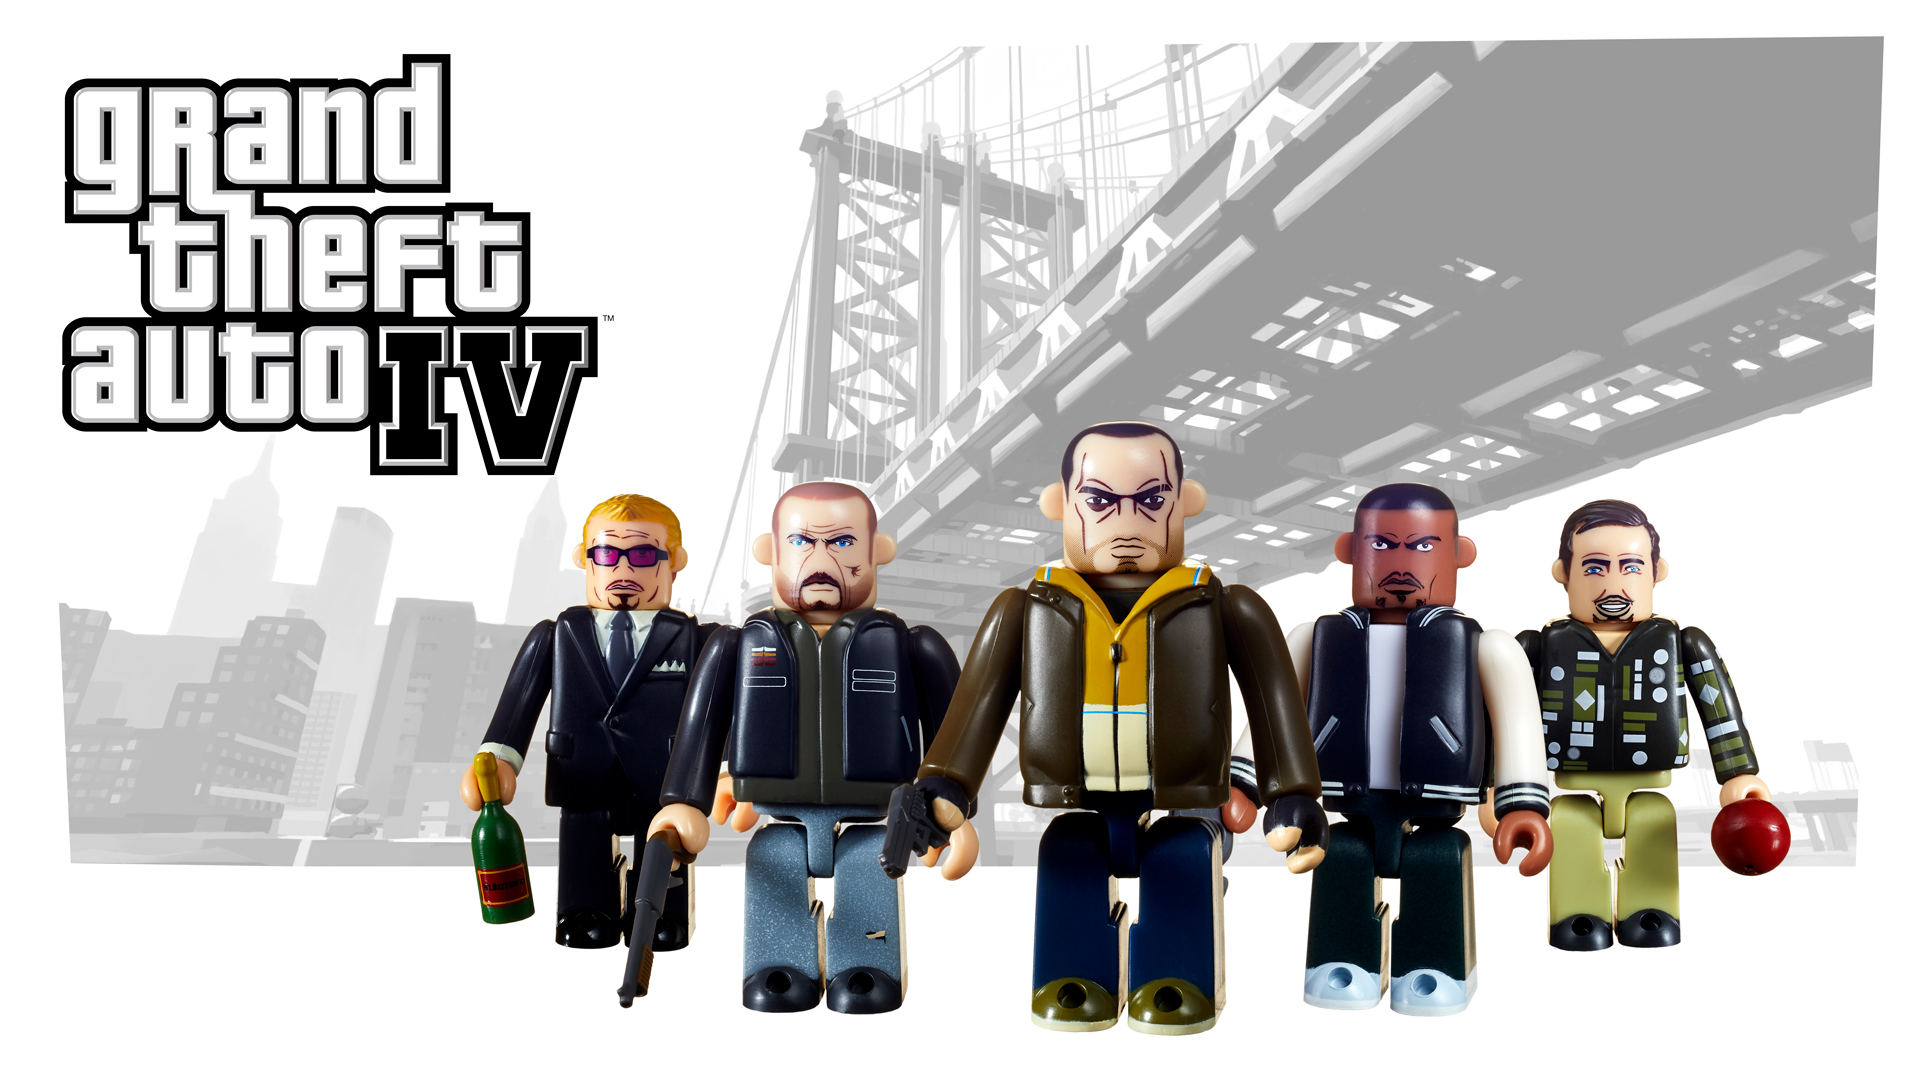 Kubricks Grand Theft Auto IV